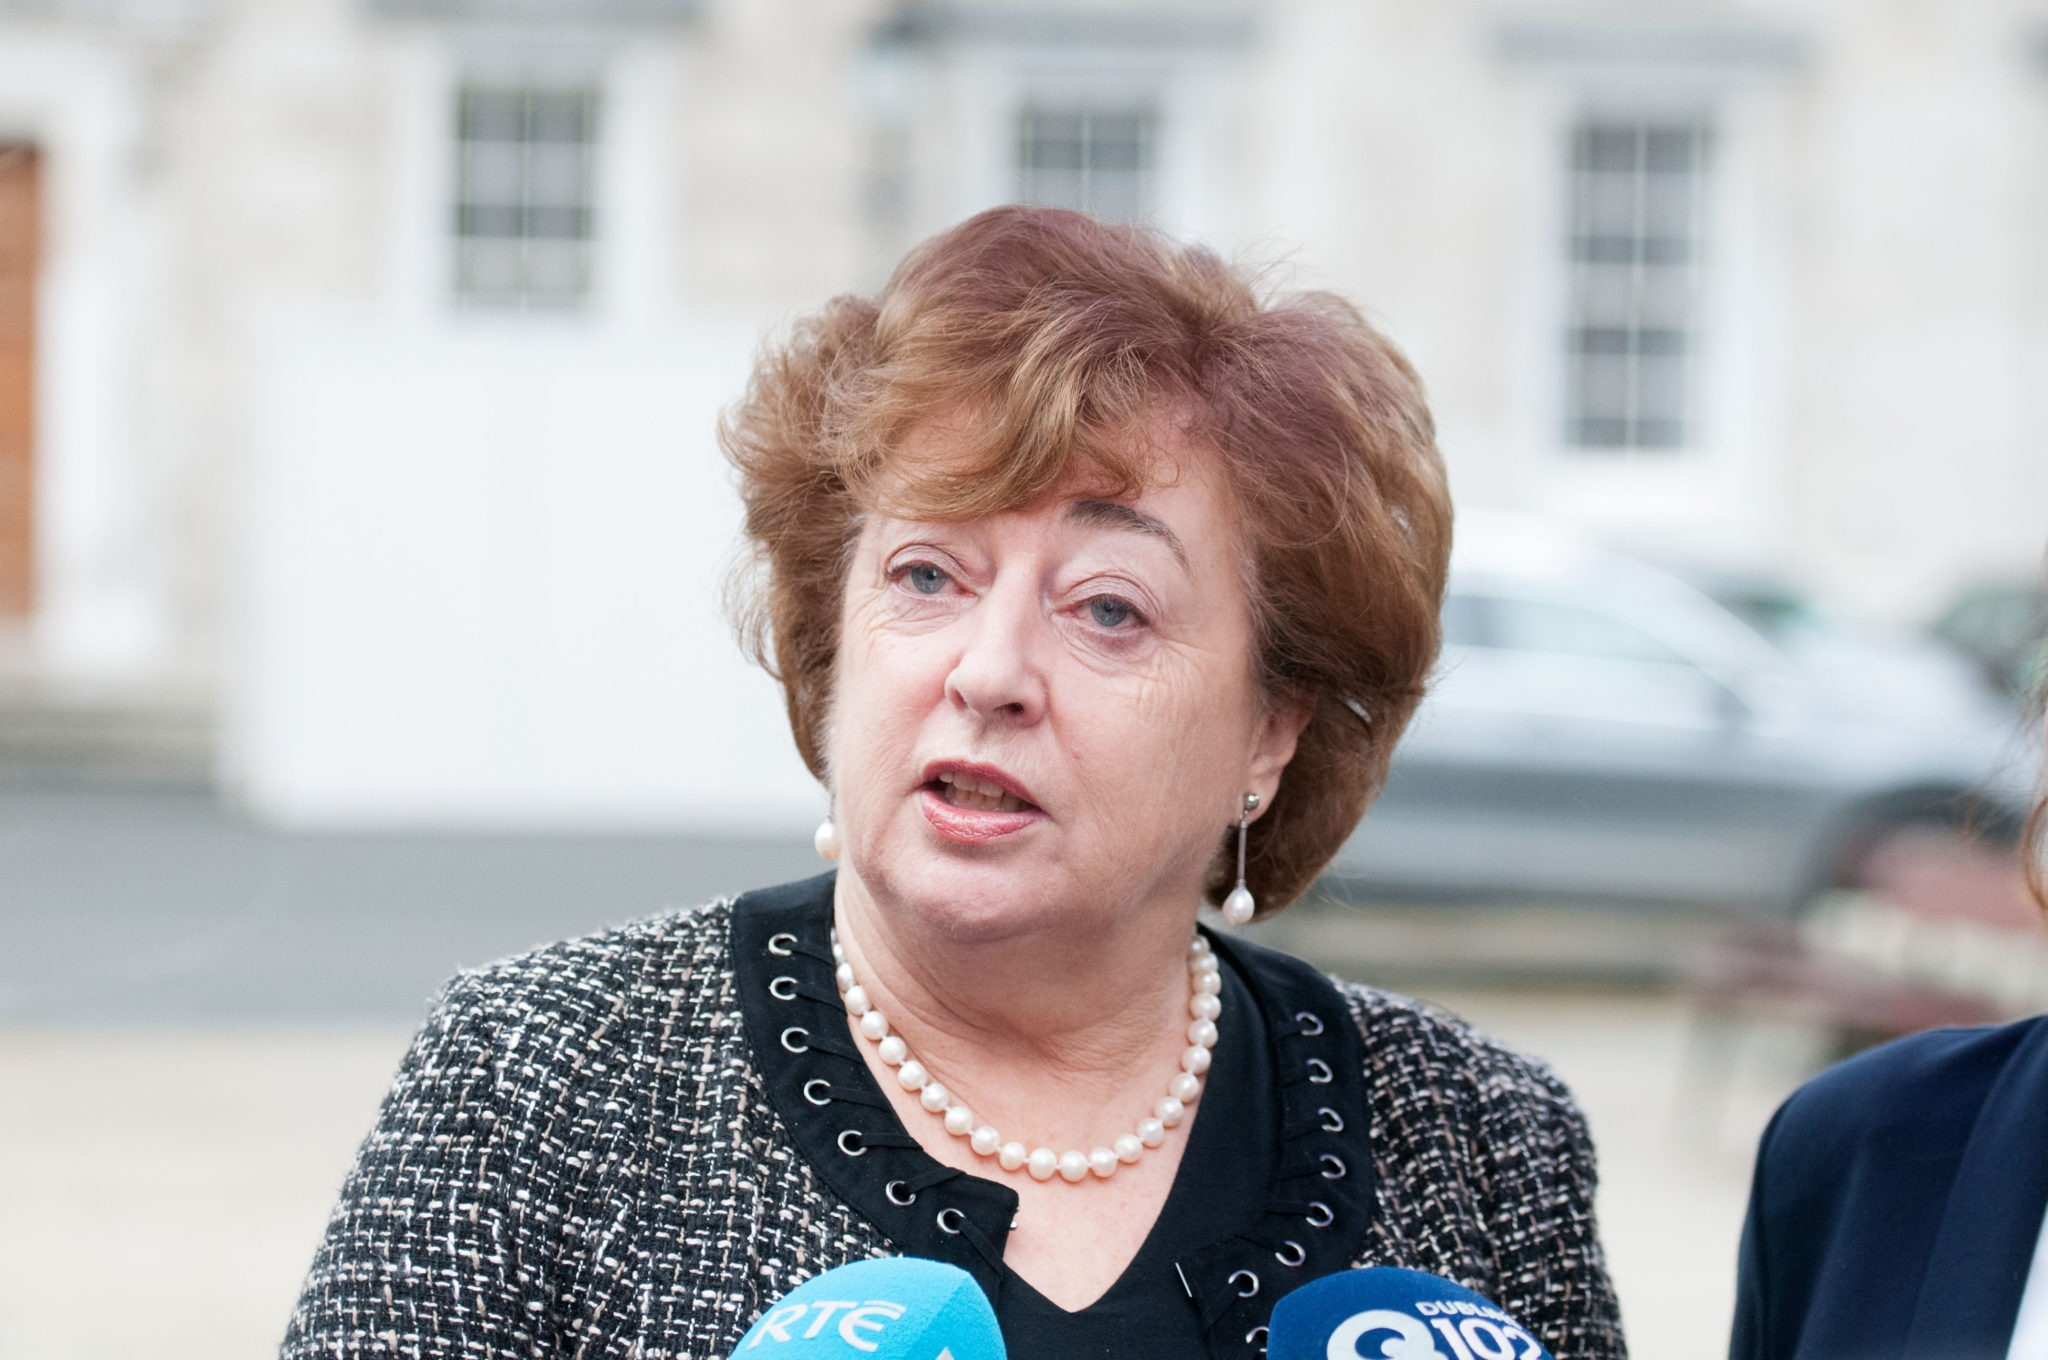 Sammon liquidation must not delay important Maynooth post primary schools projects